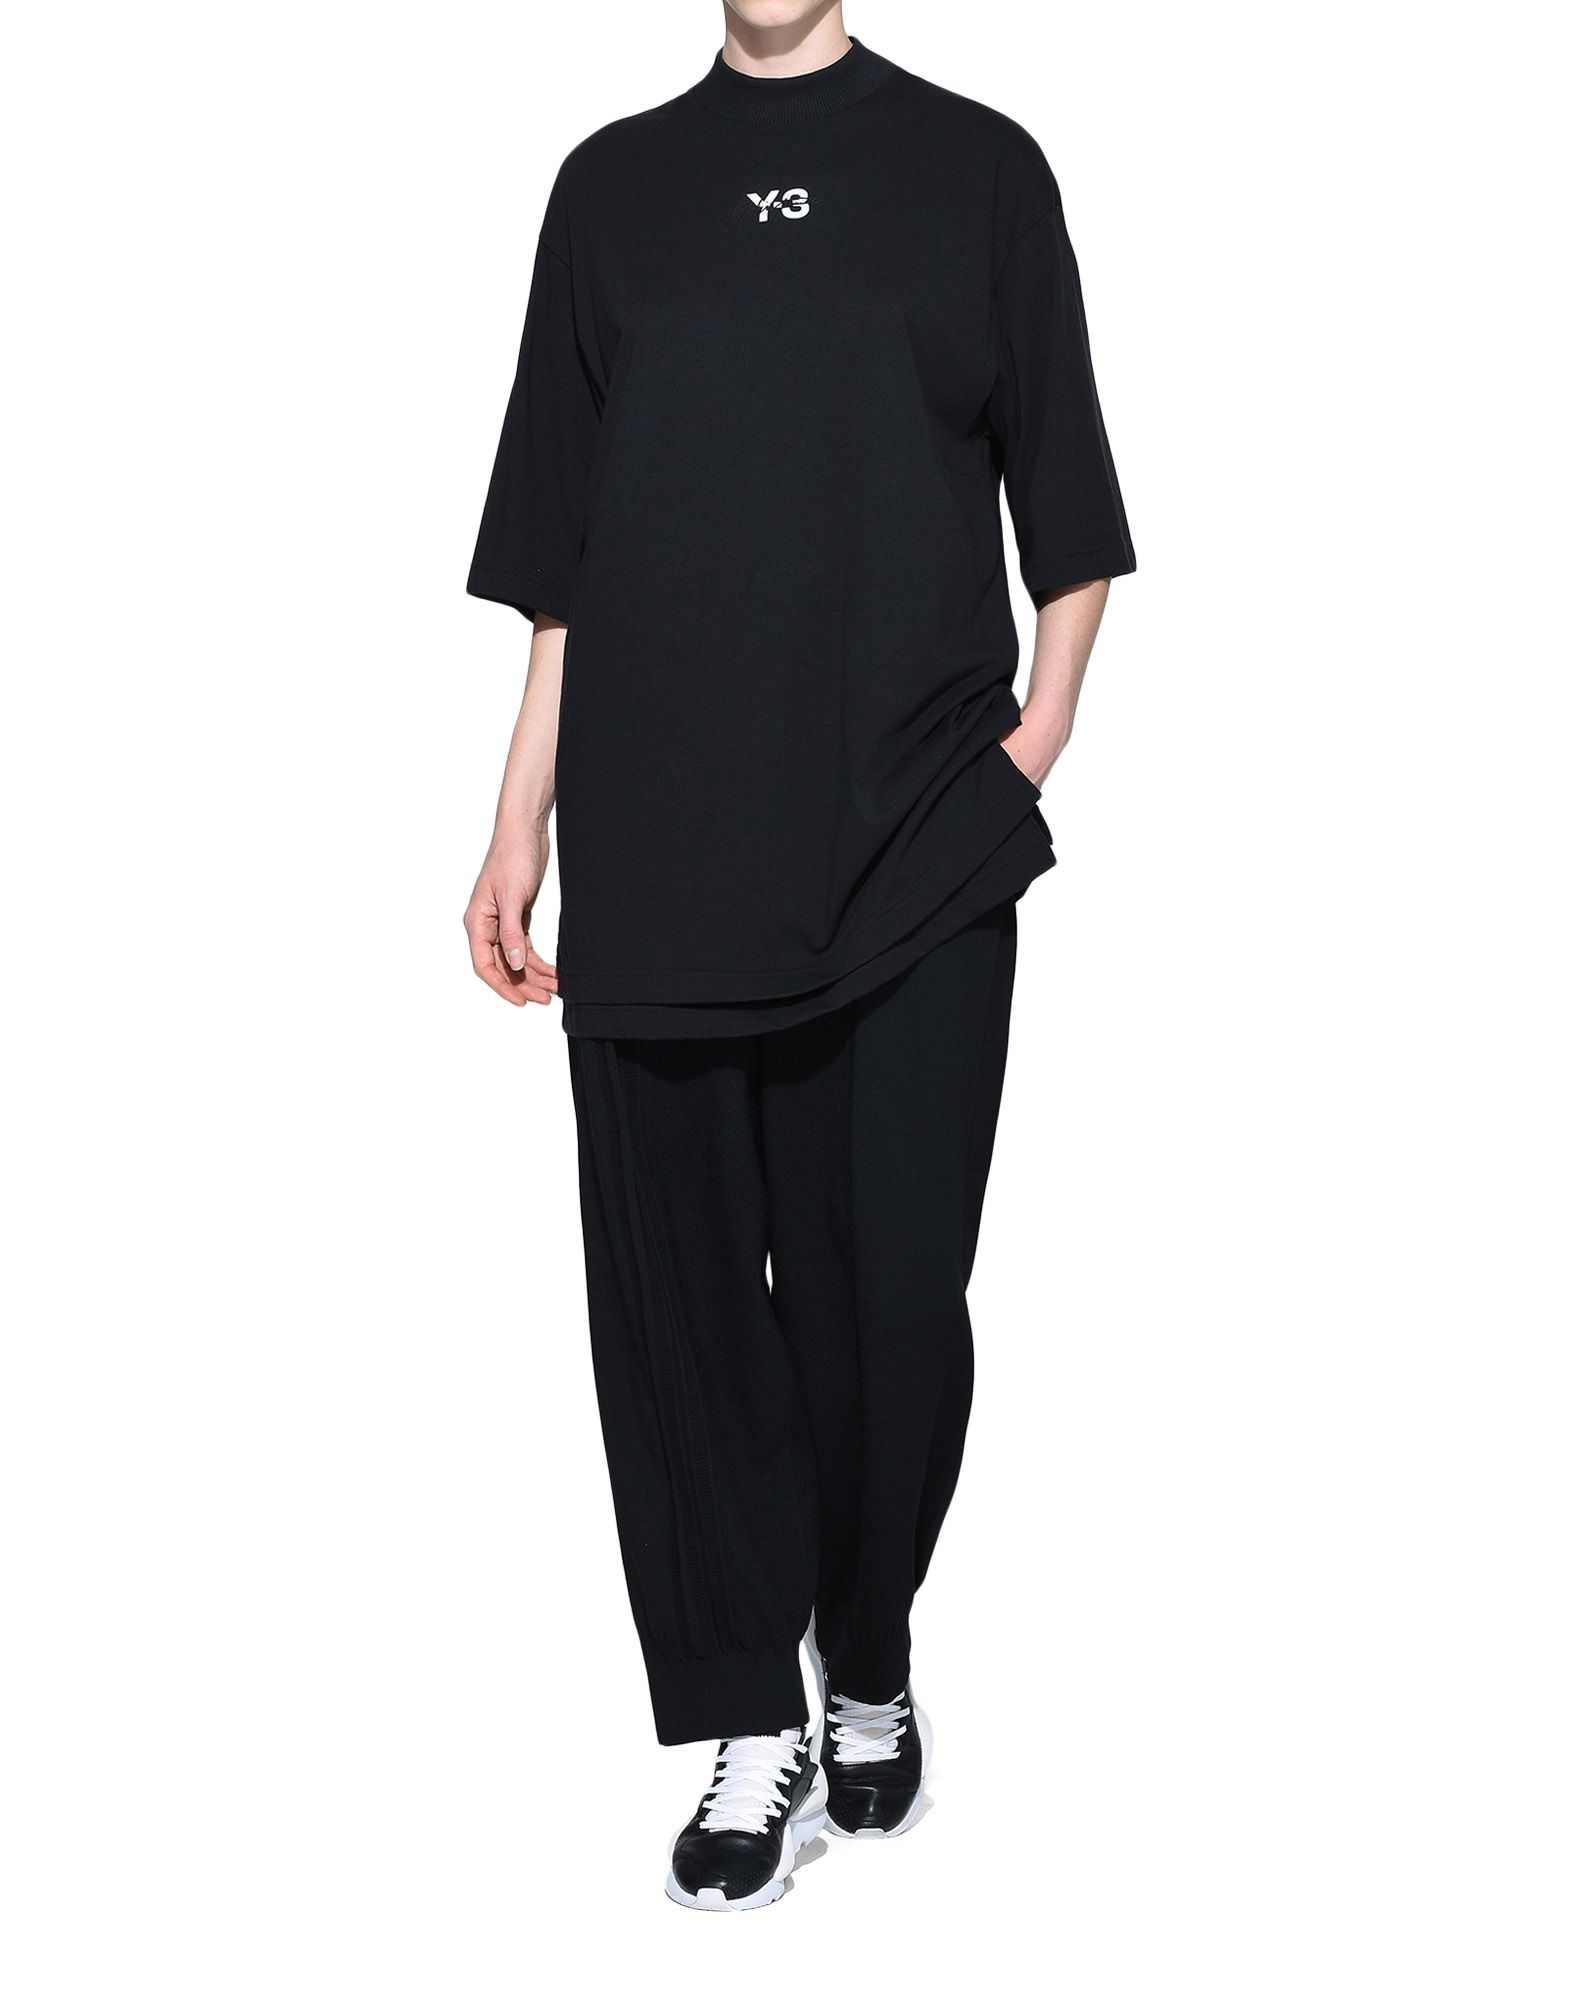 Y-3 Y-3 Signature Long Tee Short sleeve t-shirt Woman a